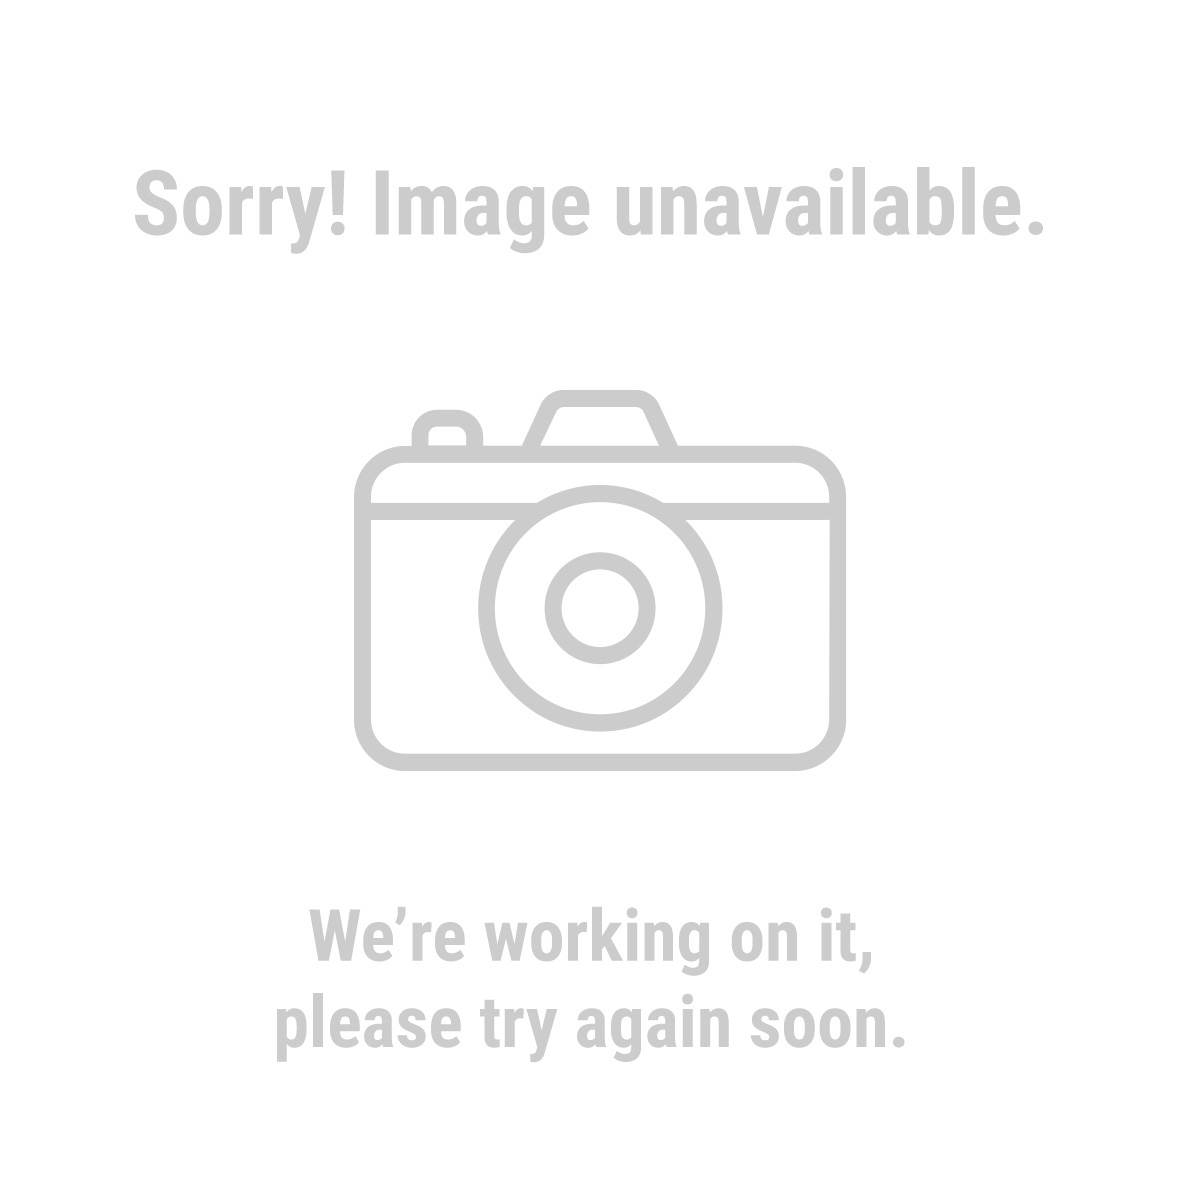 One Stop Gardens 65677 3 Pairs Women's Gloves with Leather